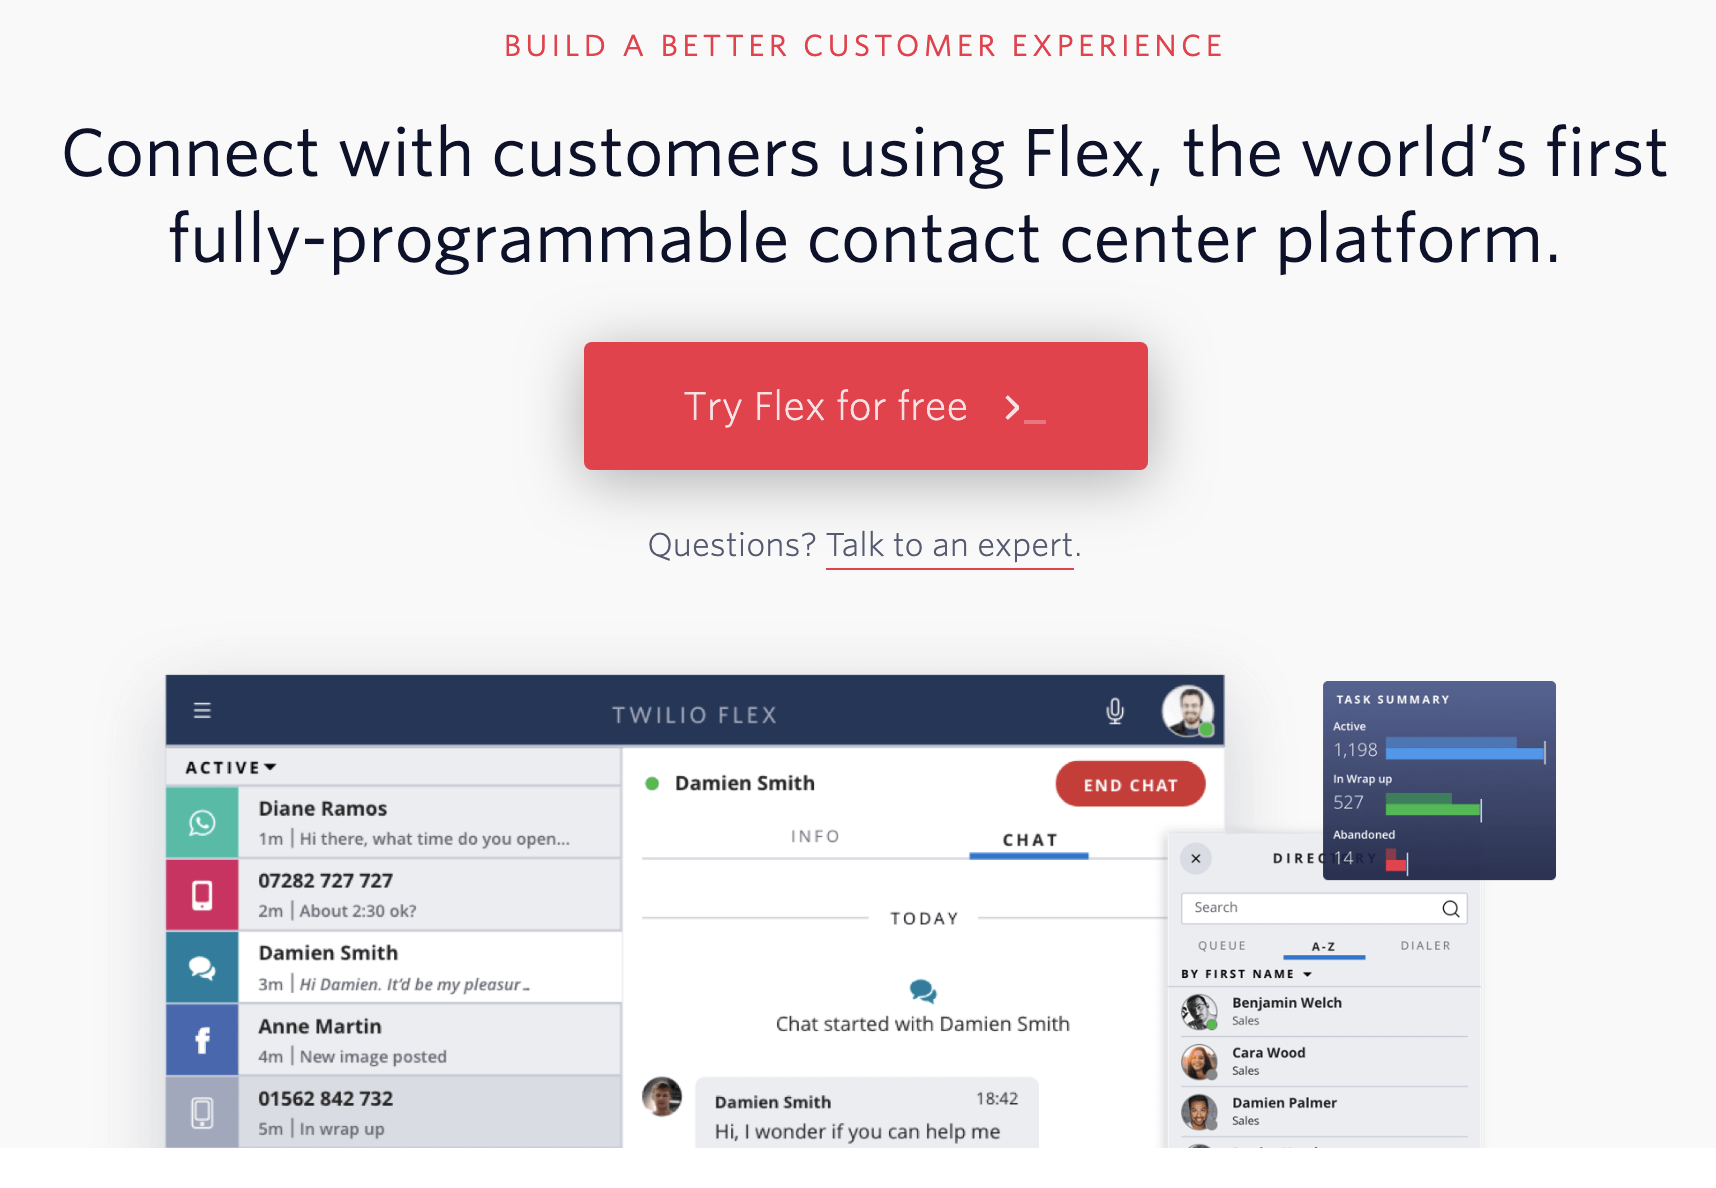 Twilio Flex customer experience tool